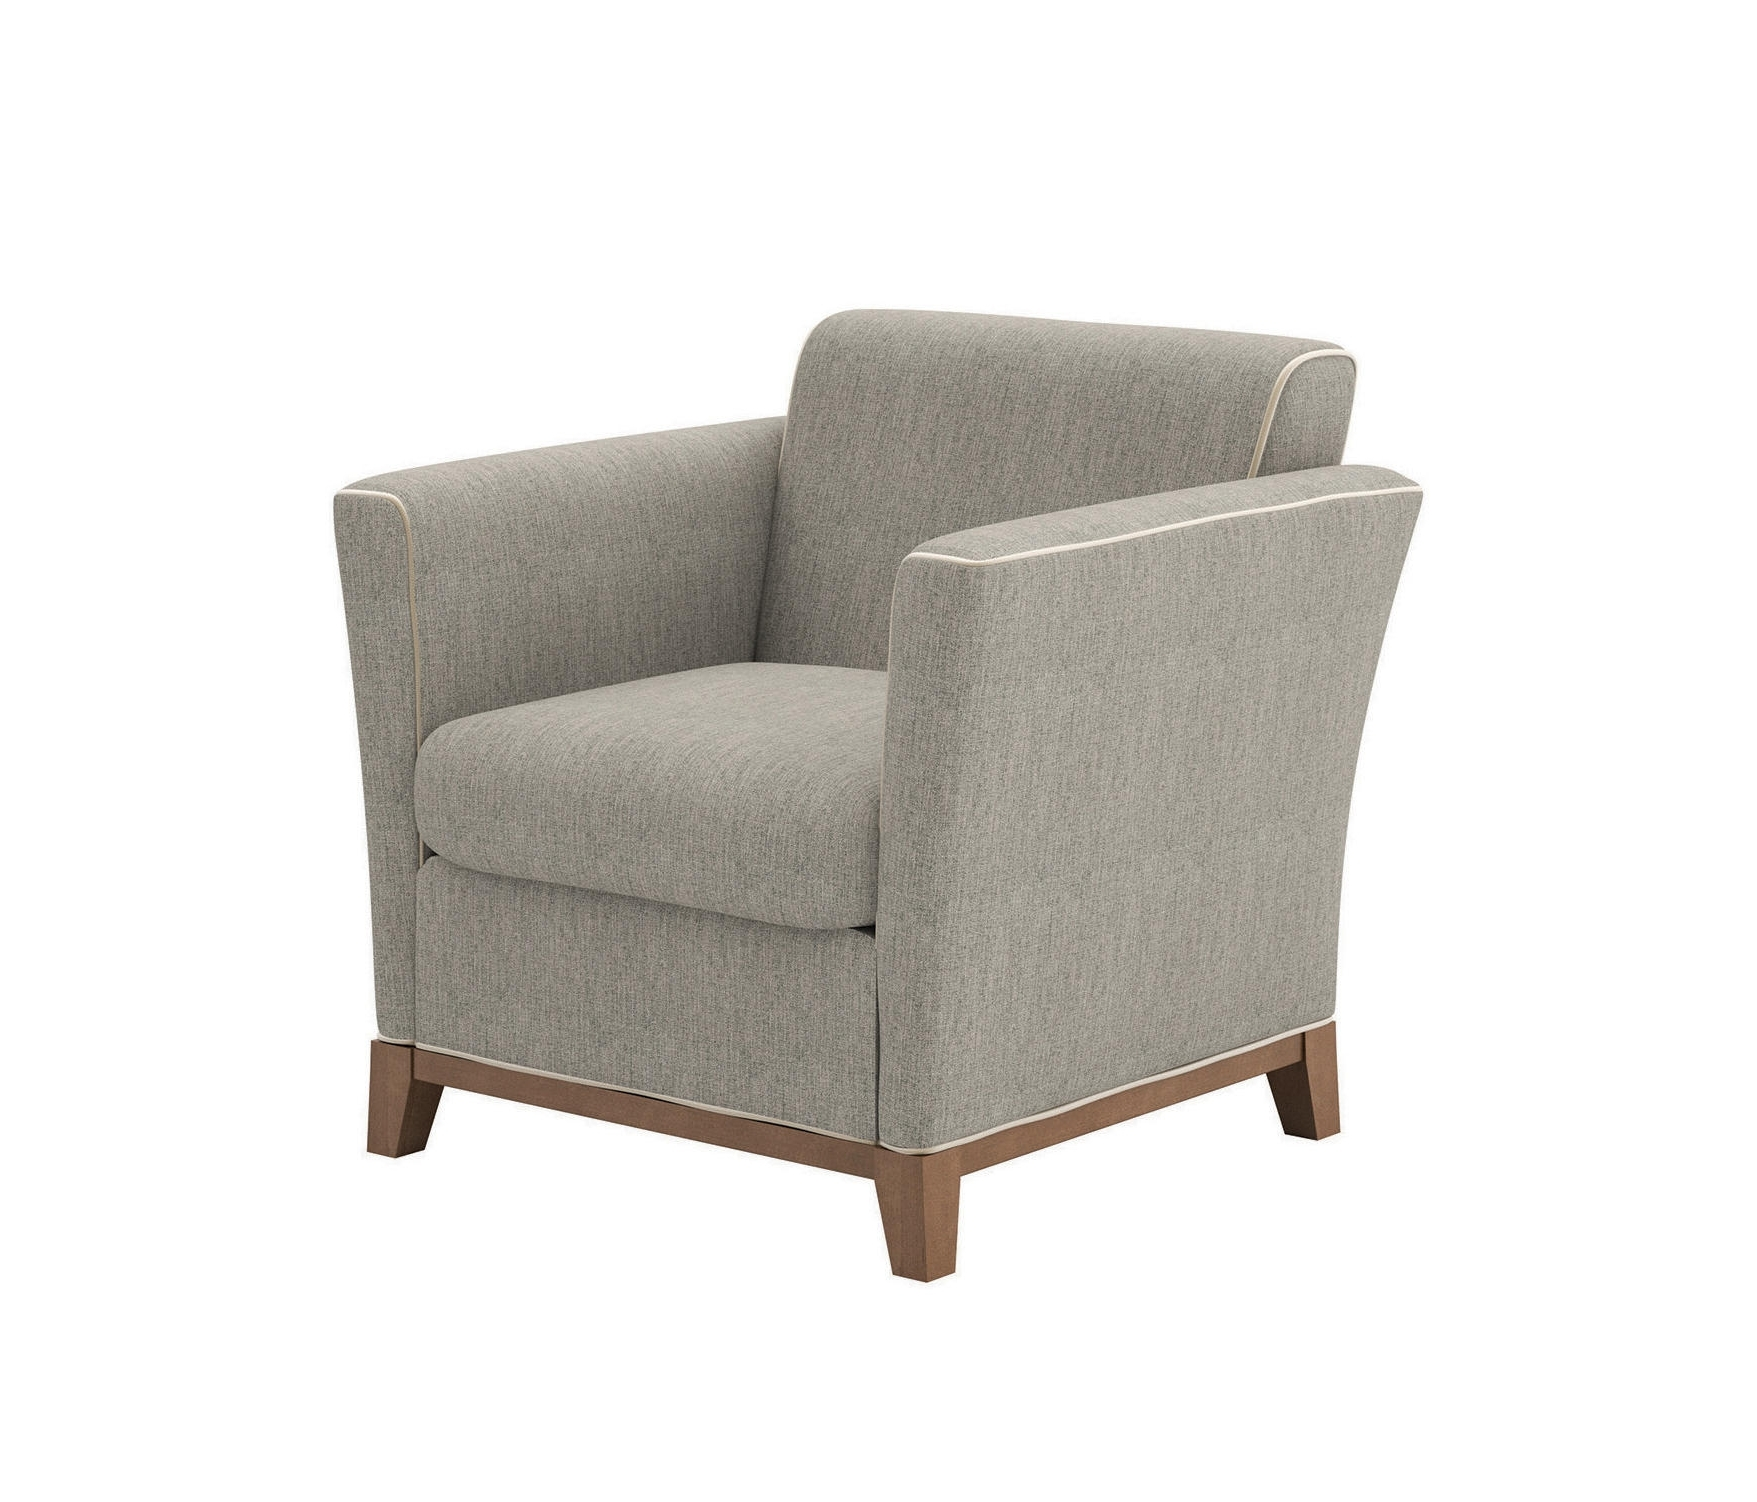 Fashionable Lounge Chair : With Ottoman Cool Chaise Lounge Leather Chaise With Chaise Lounge Chairs Under $ (View 2 of 15)